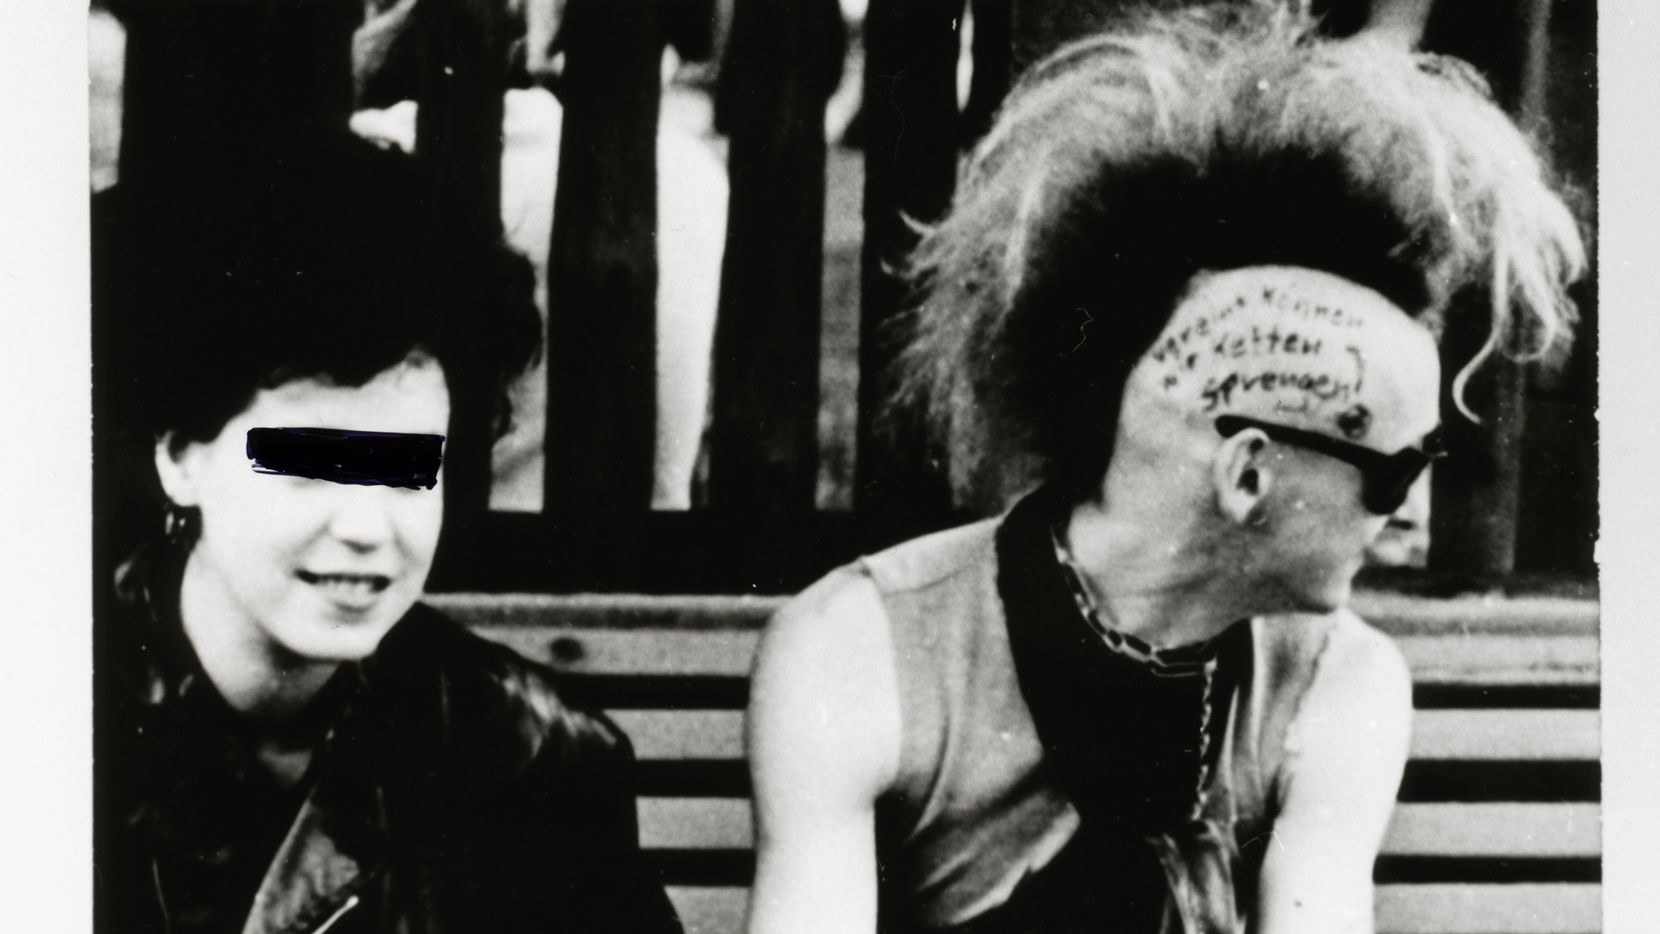 Stasi surveillance photos of East German punks, from Tim Mohr's Burning Down the Haus.